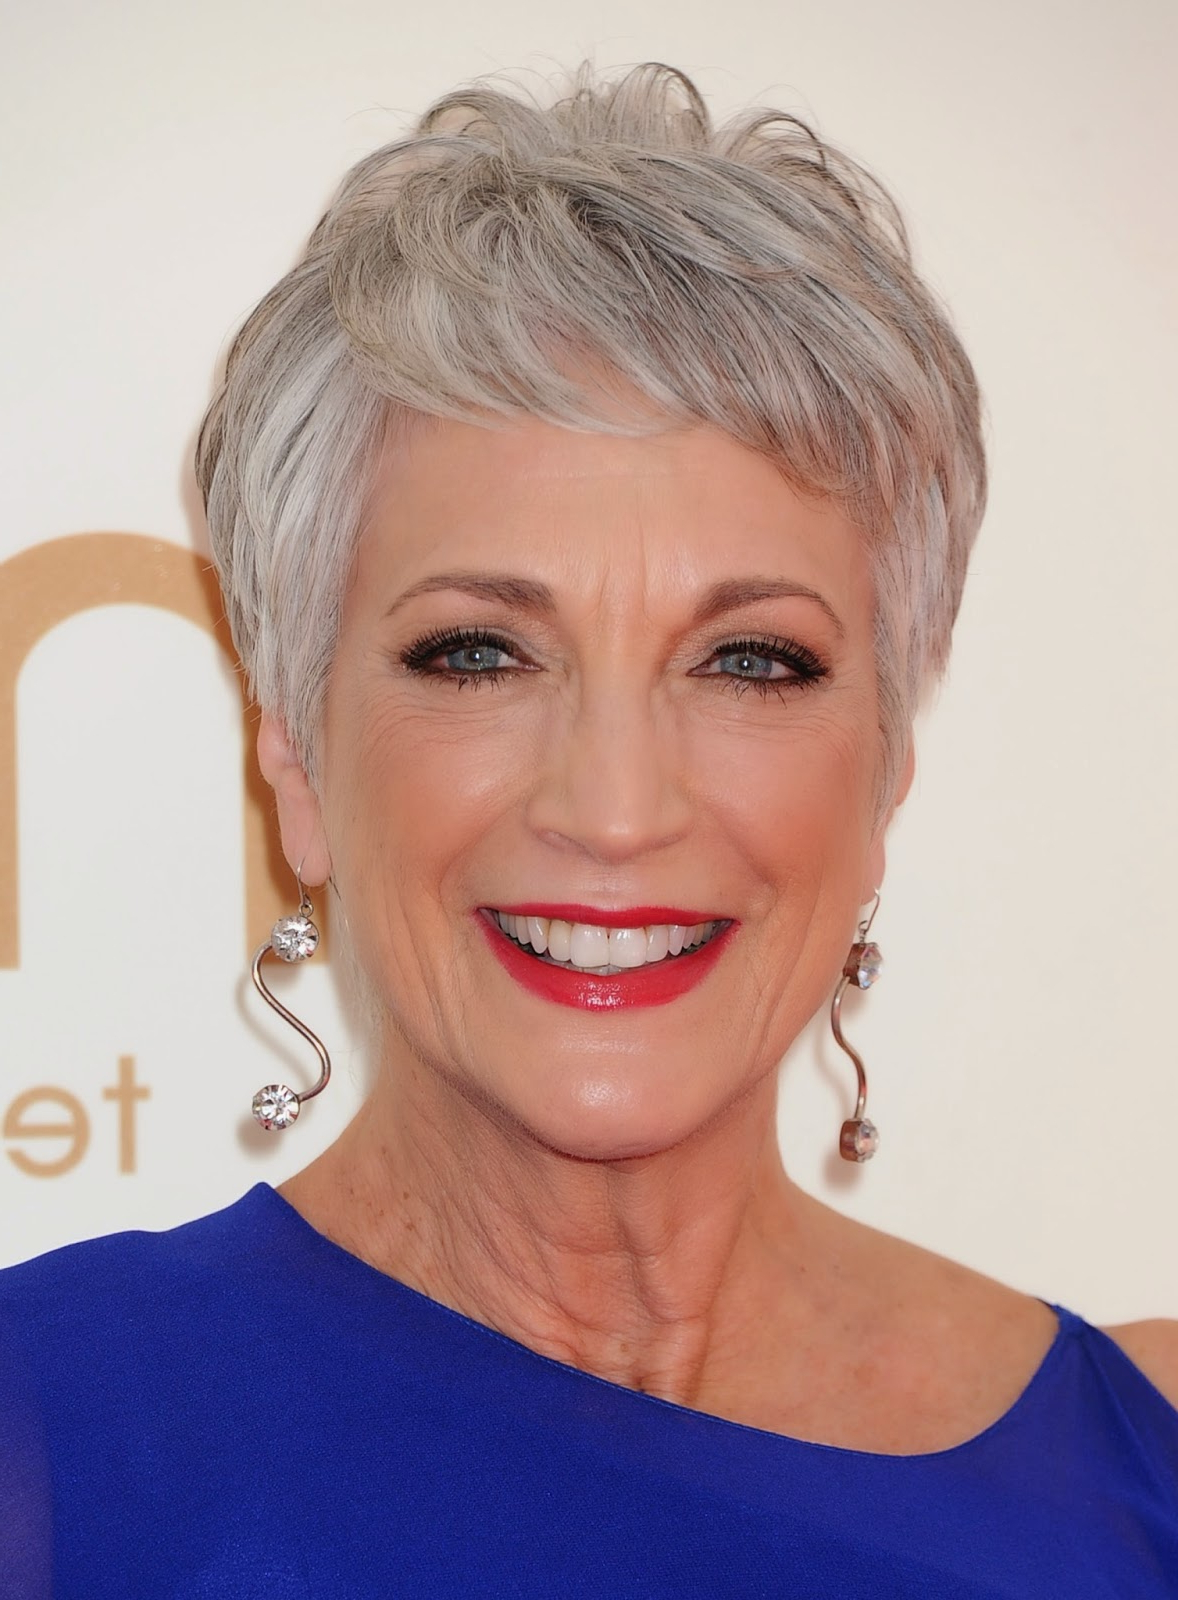 Over 50S Hairstyles For Short Hair - Hairstyle For Women & Man throughout Short Hairstyles For The Over 50S